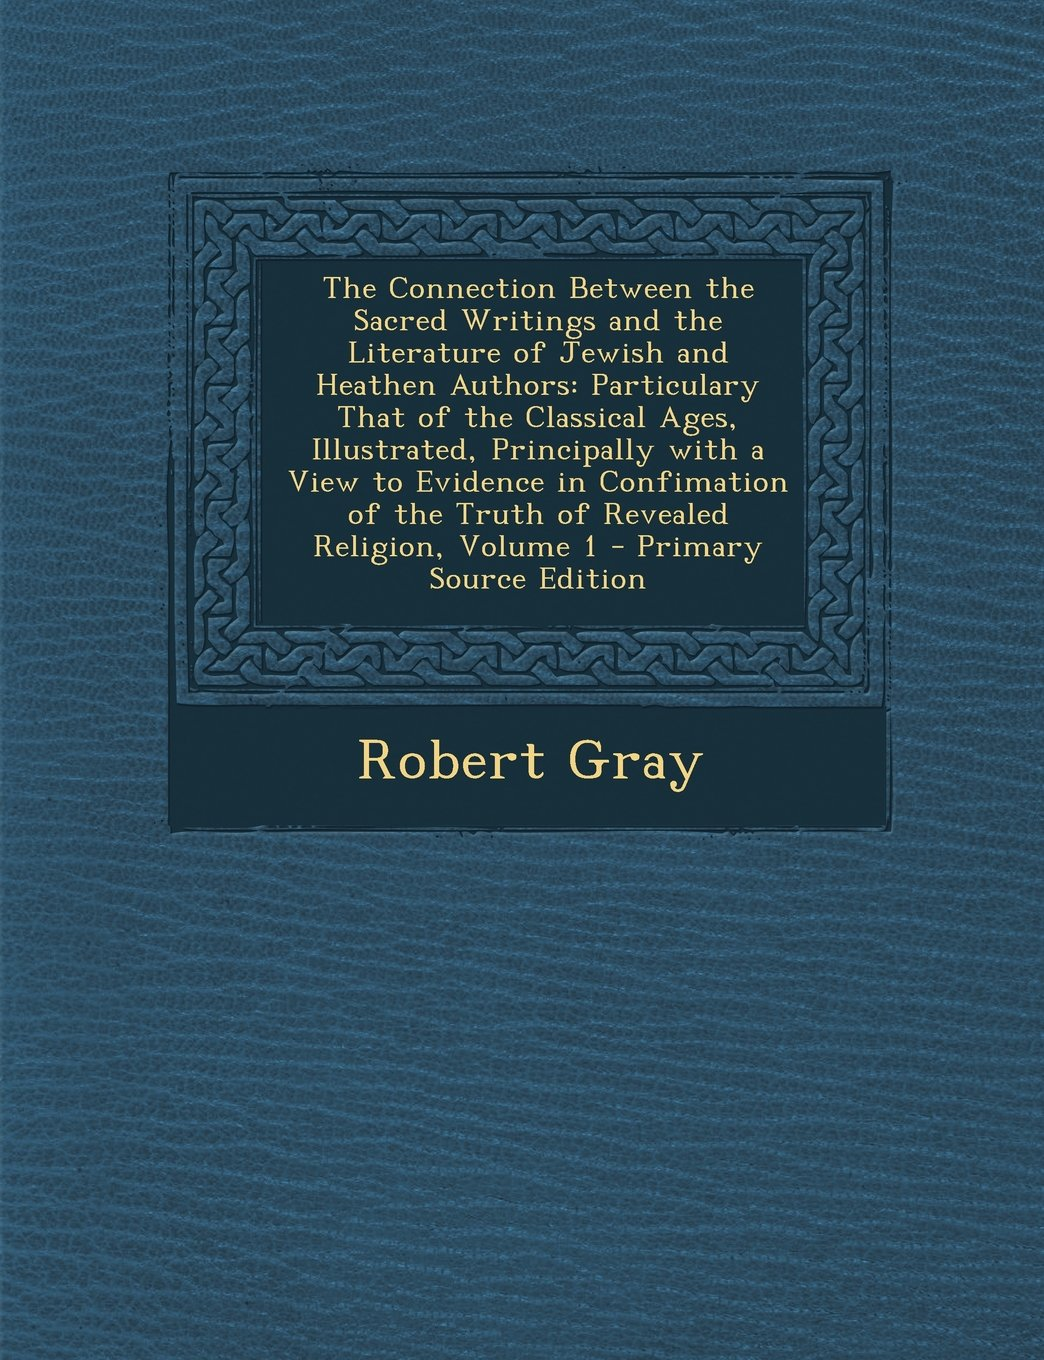 Download The Connection Between the Sacred Writings and the Literature of Jewish and Heathen Authors: Particulary That of the Classical Ages, Illustrated, ... of Revealed Religion, Volume 1 - Primary Sour pdf epub